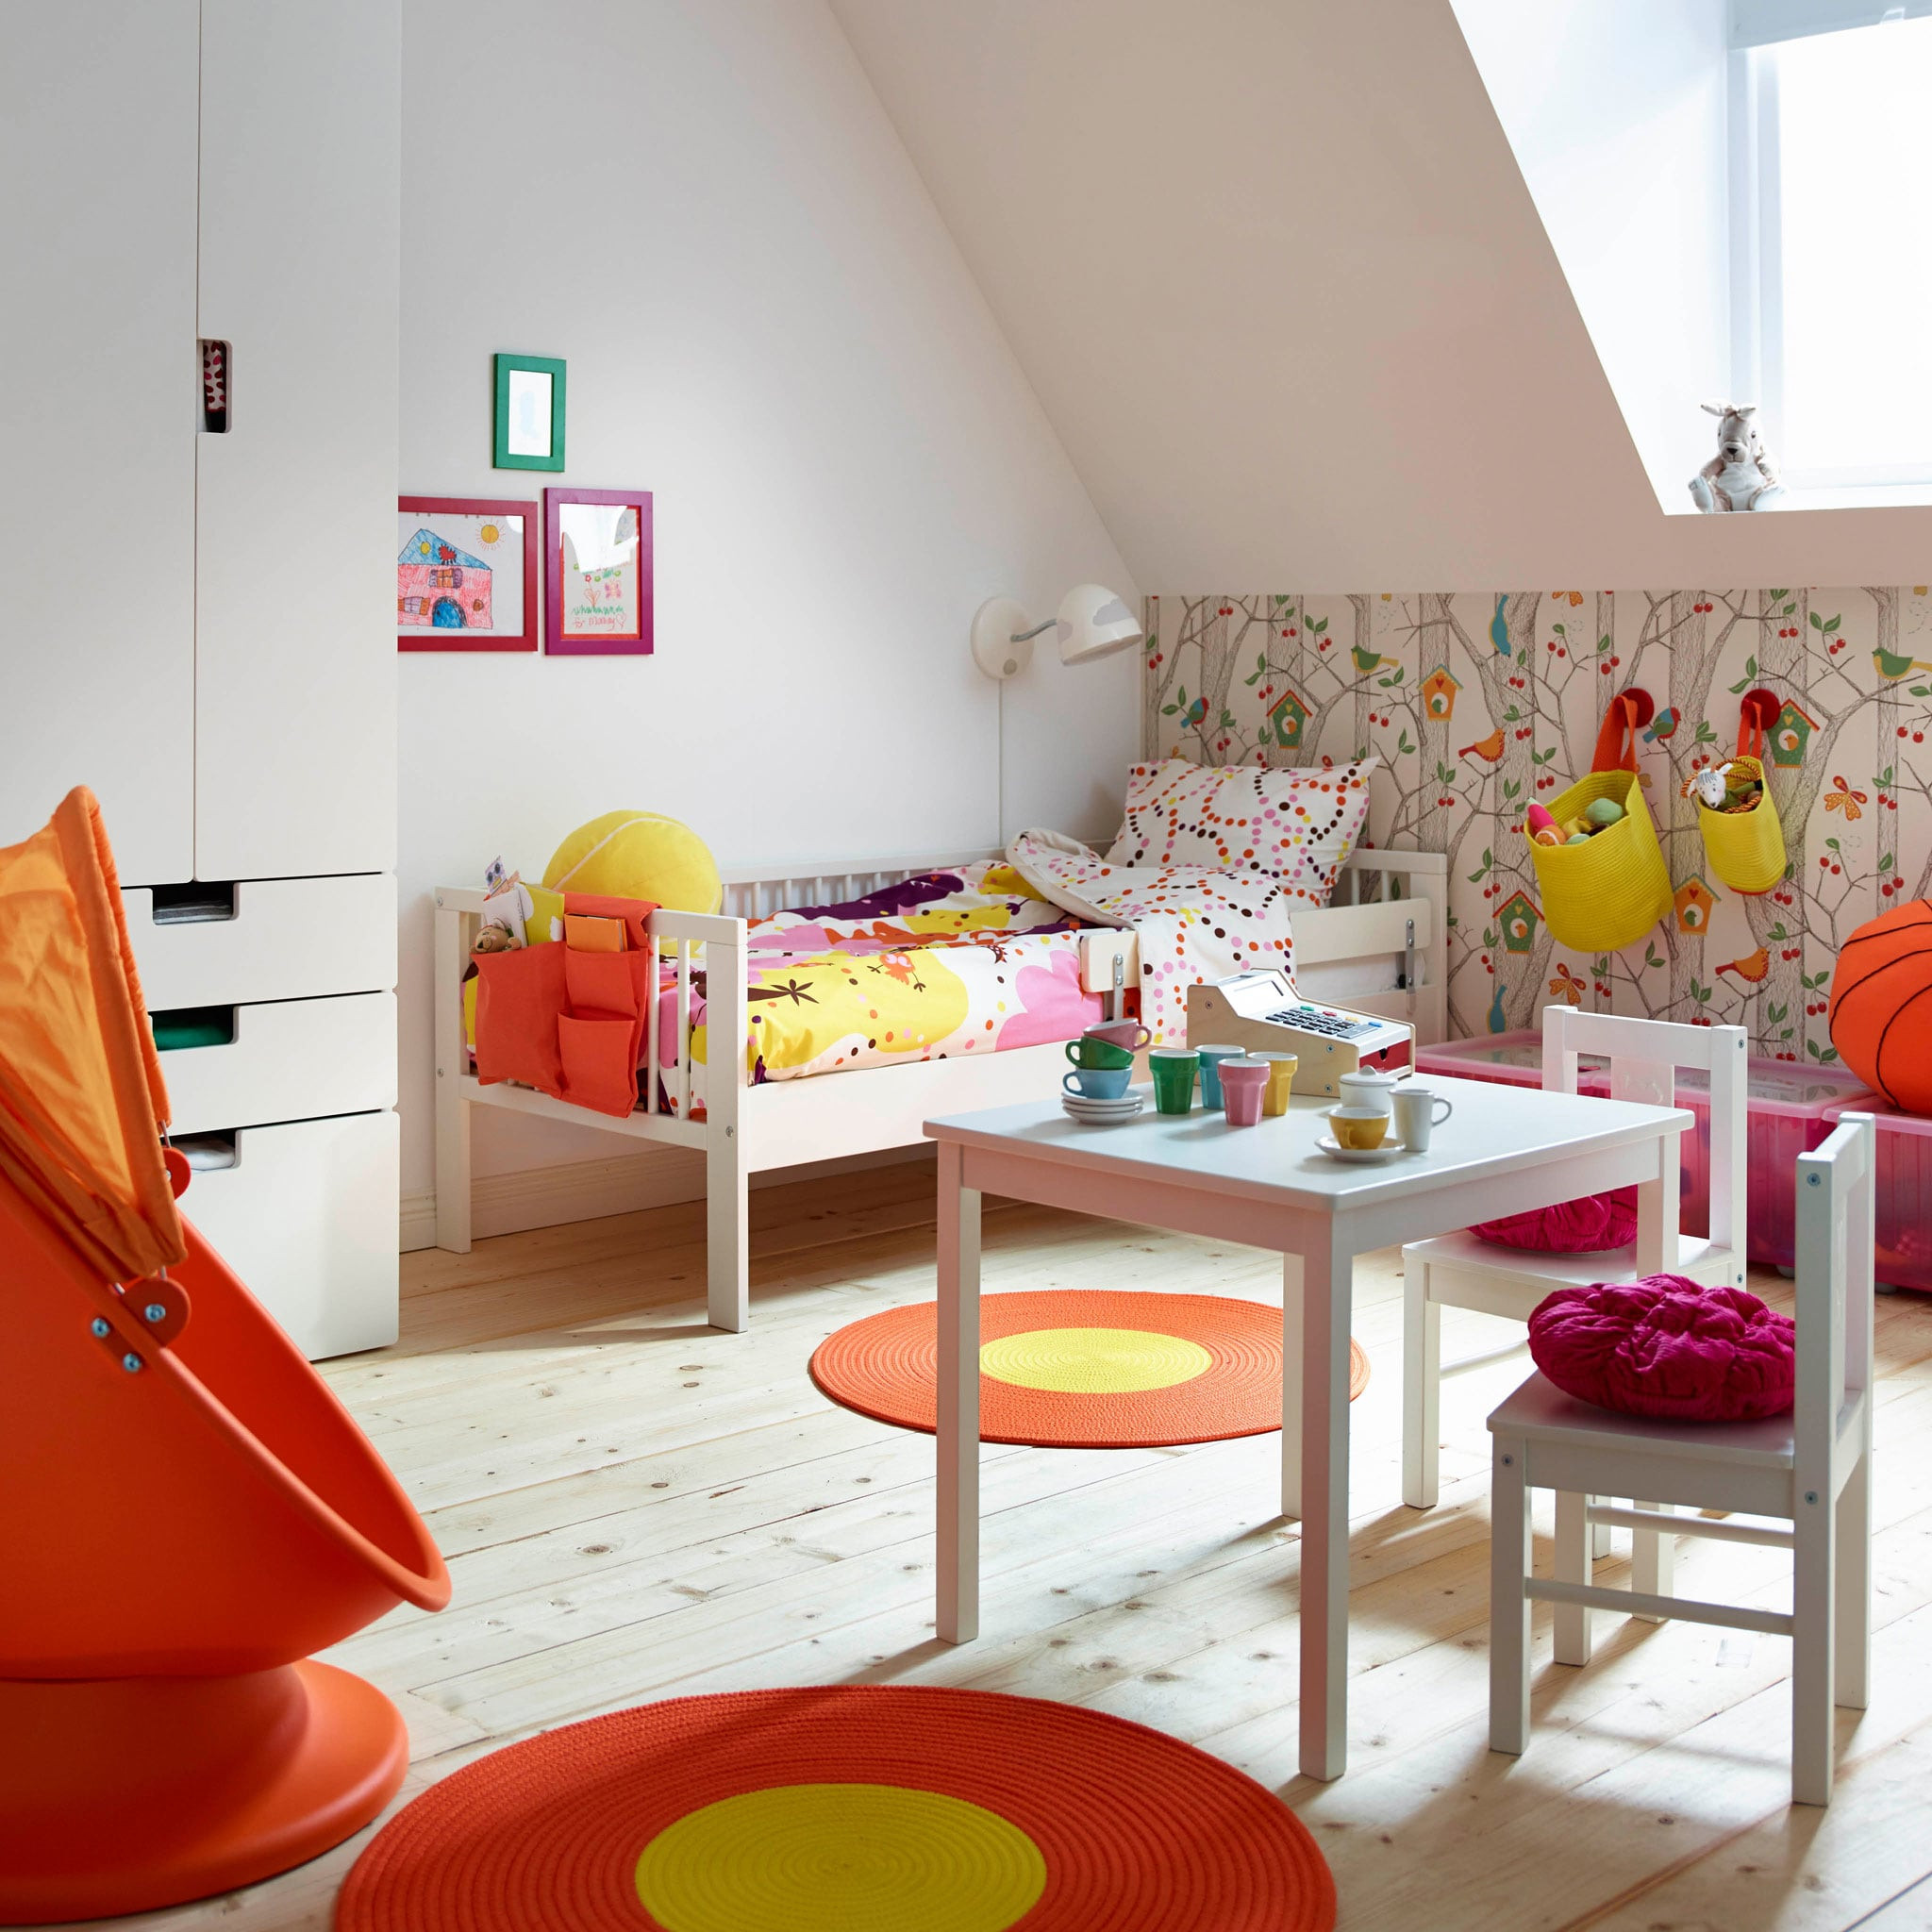 Best ideas about Ikea Kids Room . Save or Pin Children s Furniture & Ideas Now.